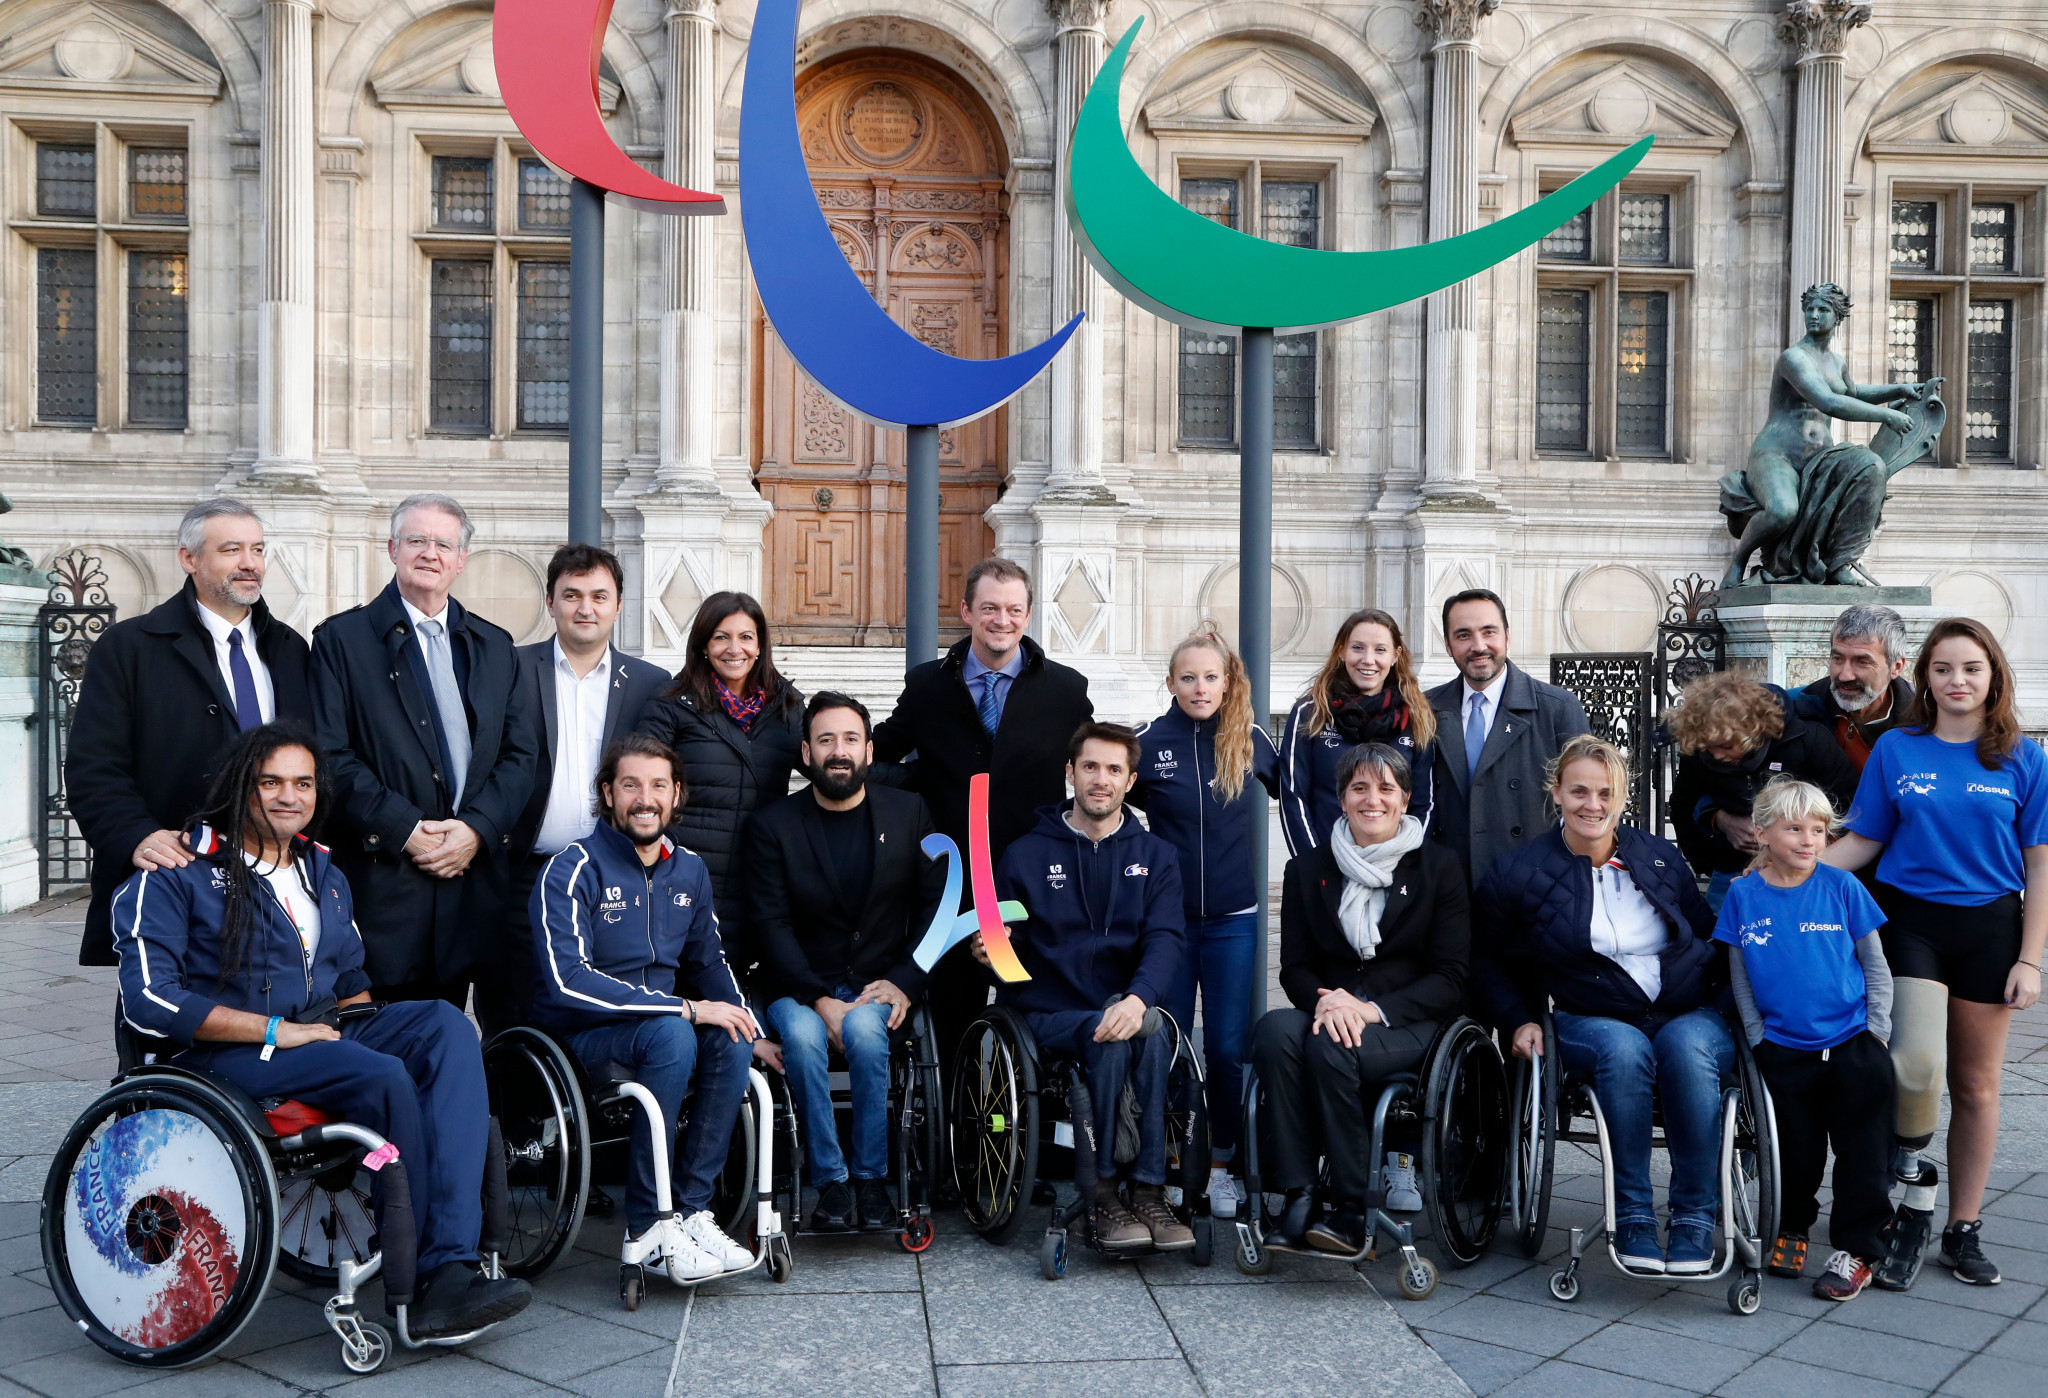 Paralympic Games sports for Paris 2024 unchanged from Tokyo 2020 as cerebral palsy football misses out on place